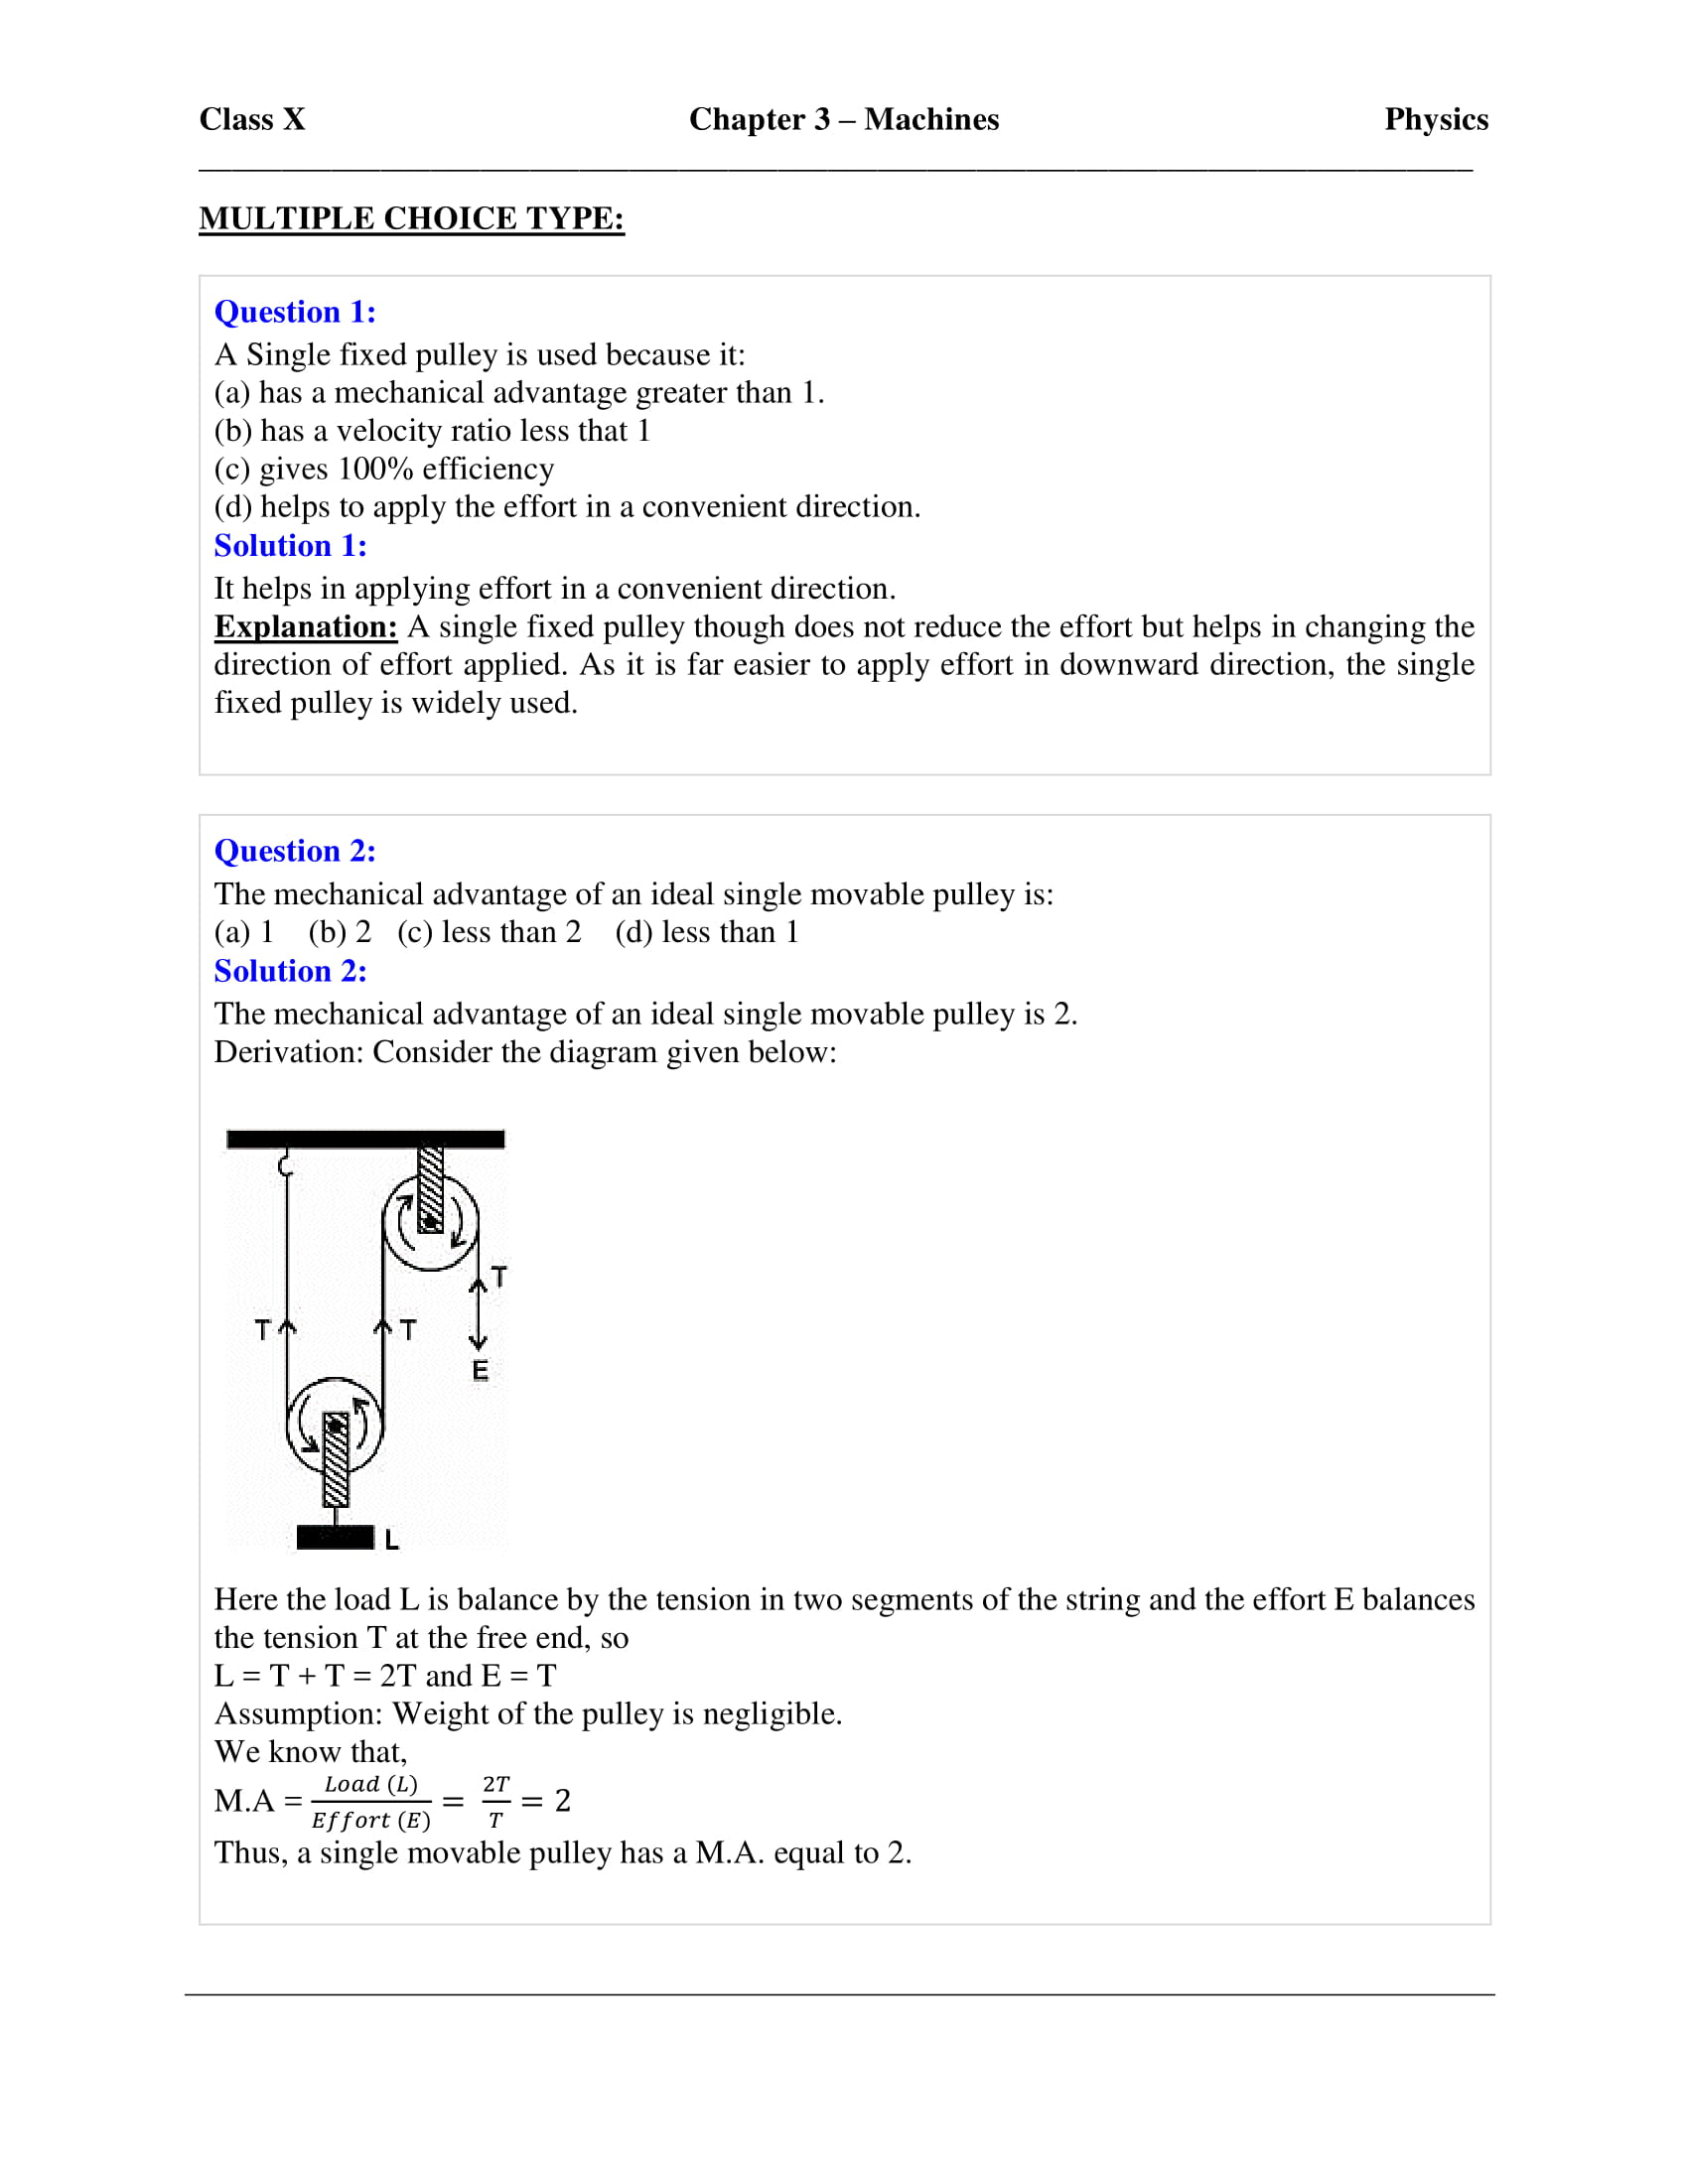 icse-selina-physics-solutions-class-10-chapter-3-machines-35